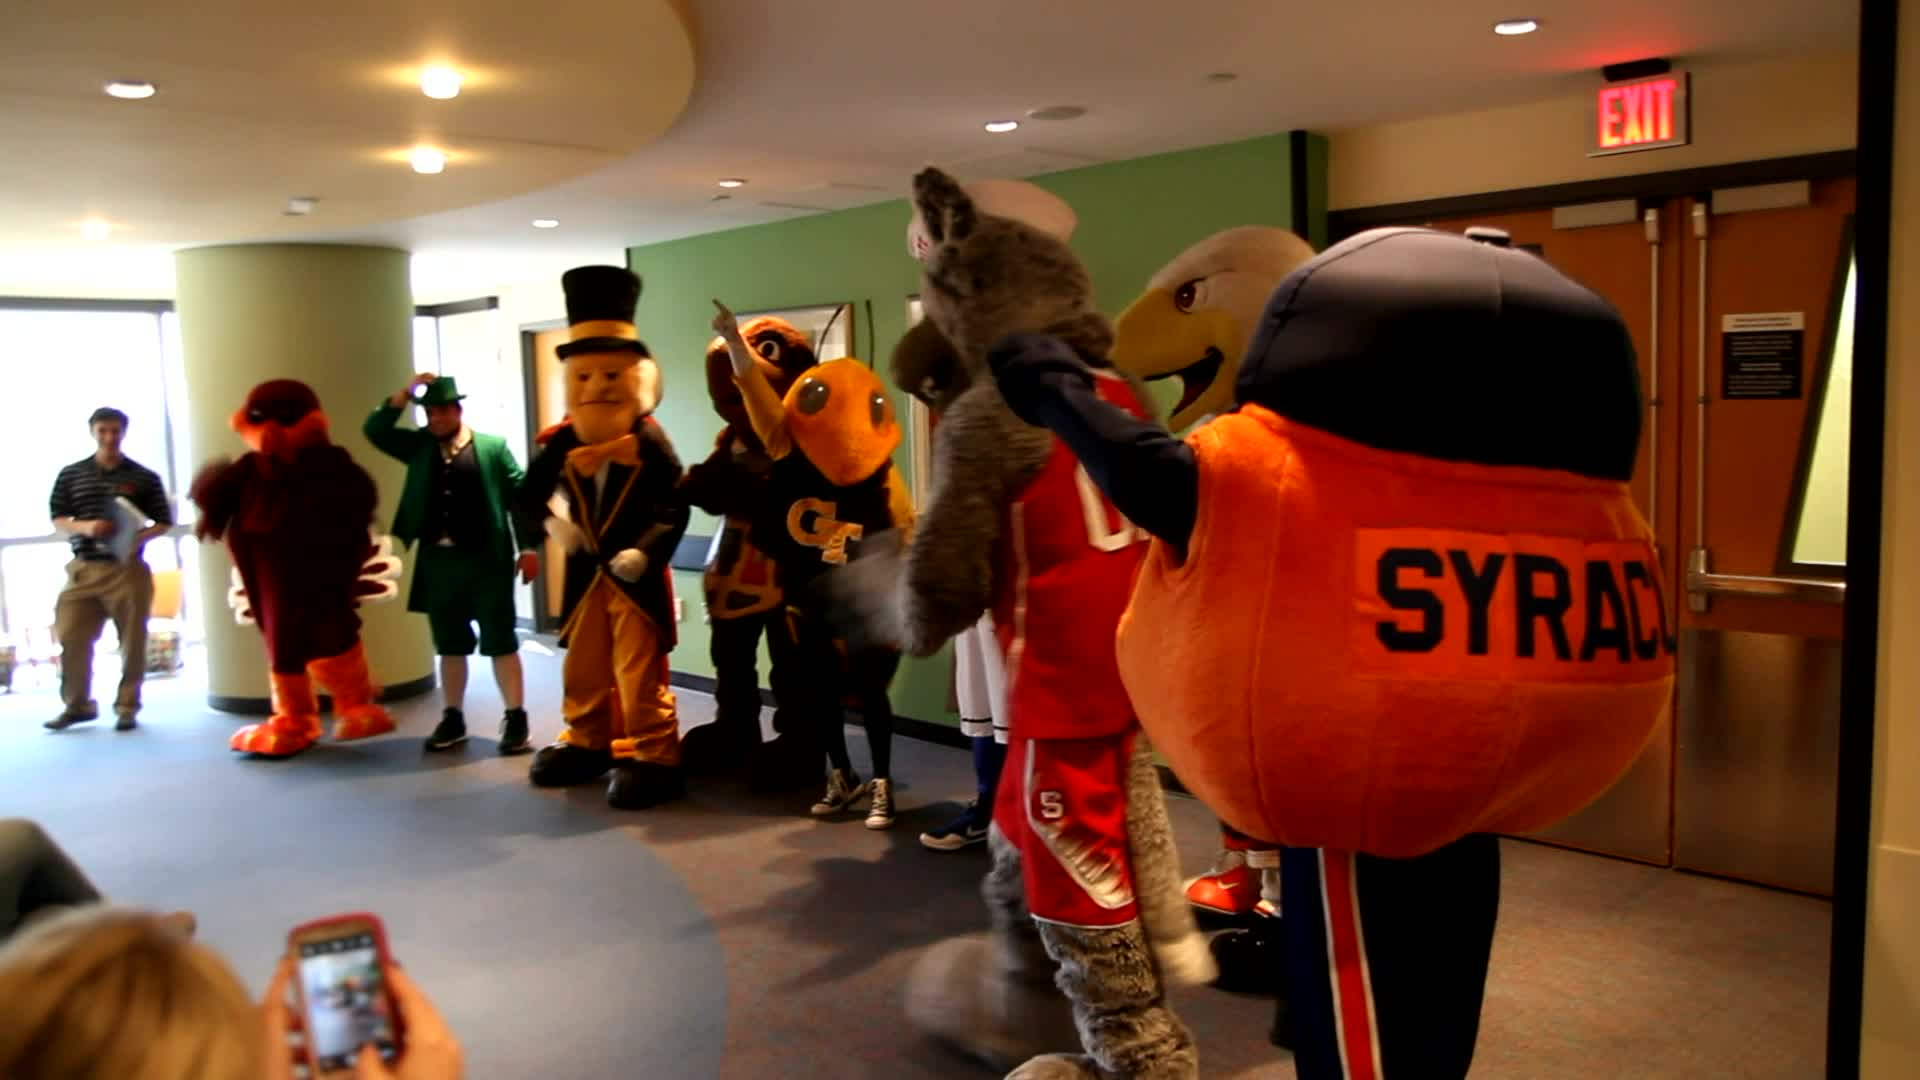 The mascots of the Atlantic Coast Conference spent some time at Brenner Children's Hospital, part of Wake Forest Baptist Medical Center, in Winston-Salem, N.C. on Friday, March 14. They stopped by as part of an outreach initiative for the 2014 ACC Men's Basketball Tournament. Young patients got to meet and have their photos taken with their favorite mascots during the visit. A good time was had by all, especially the mascots who seemed to thoroughly enjoy a quick break away from courtside.